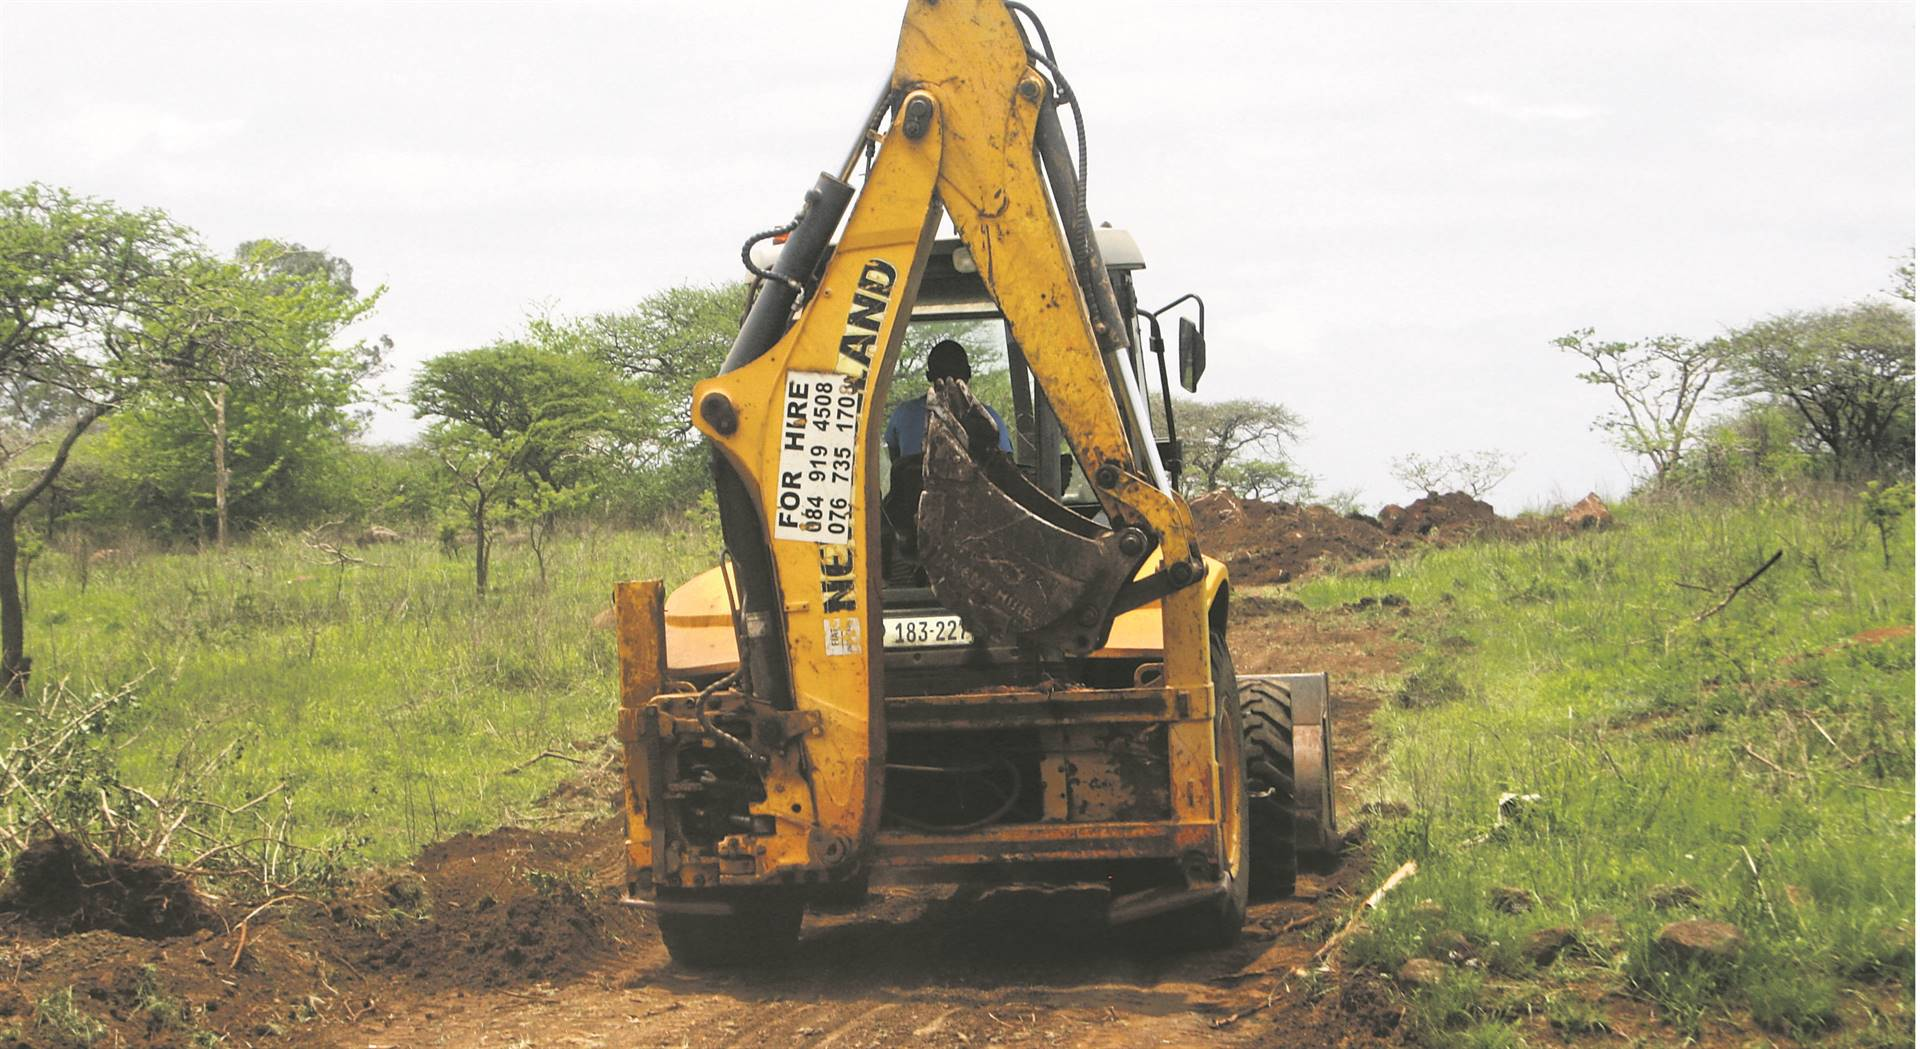 The land invaders use graders to erect illegal structures.